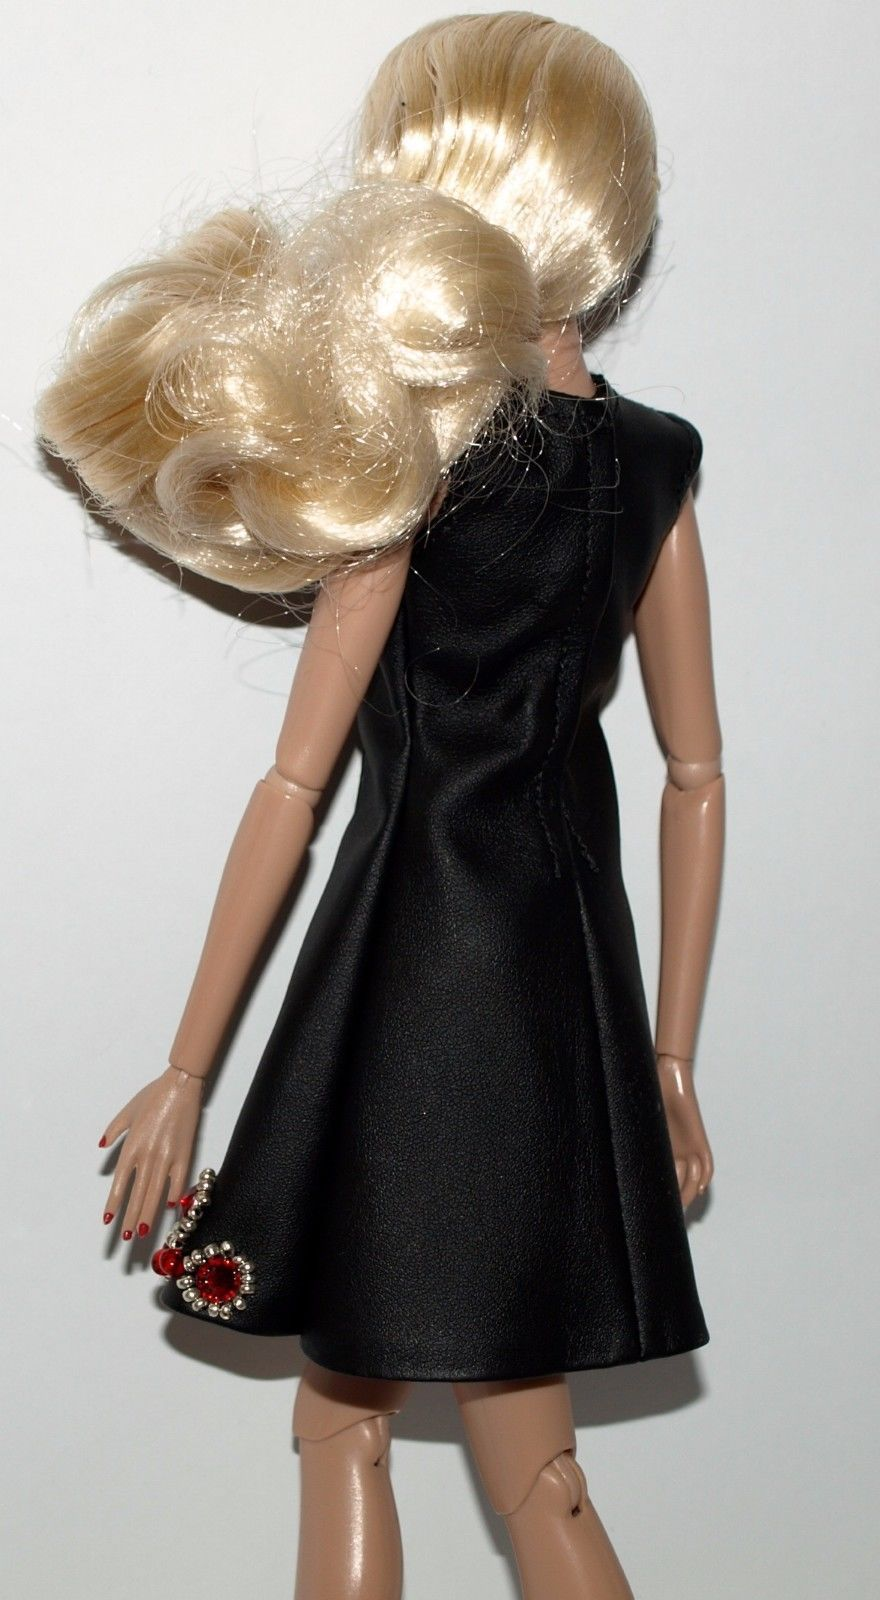 """F or FR2 and similar 12"""" dolls. from ~KAREN exclusive~. O OAK outfit. I s hip to Worldwide. It is mint, from smoke and pet free home. All dolls and fashions are collected by an adult collector, and come from a smoke and pet free home, clean environment. 